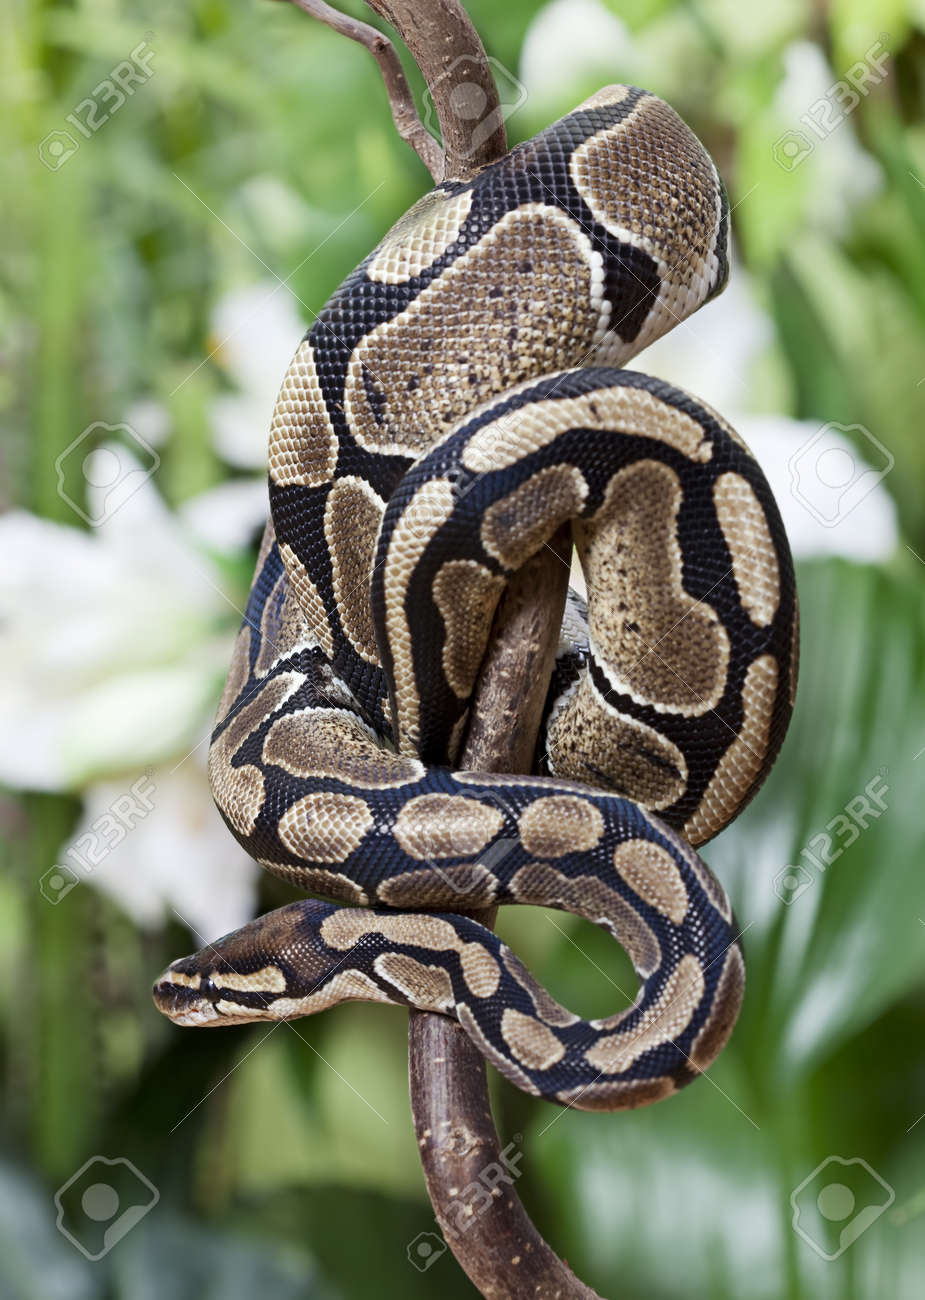 Royal Python snake creeping on a wooden branch - 17728123